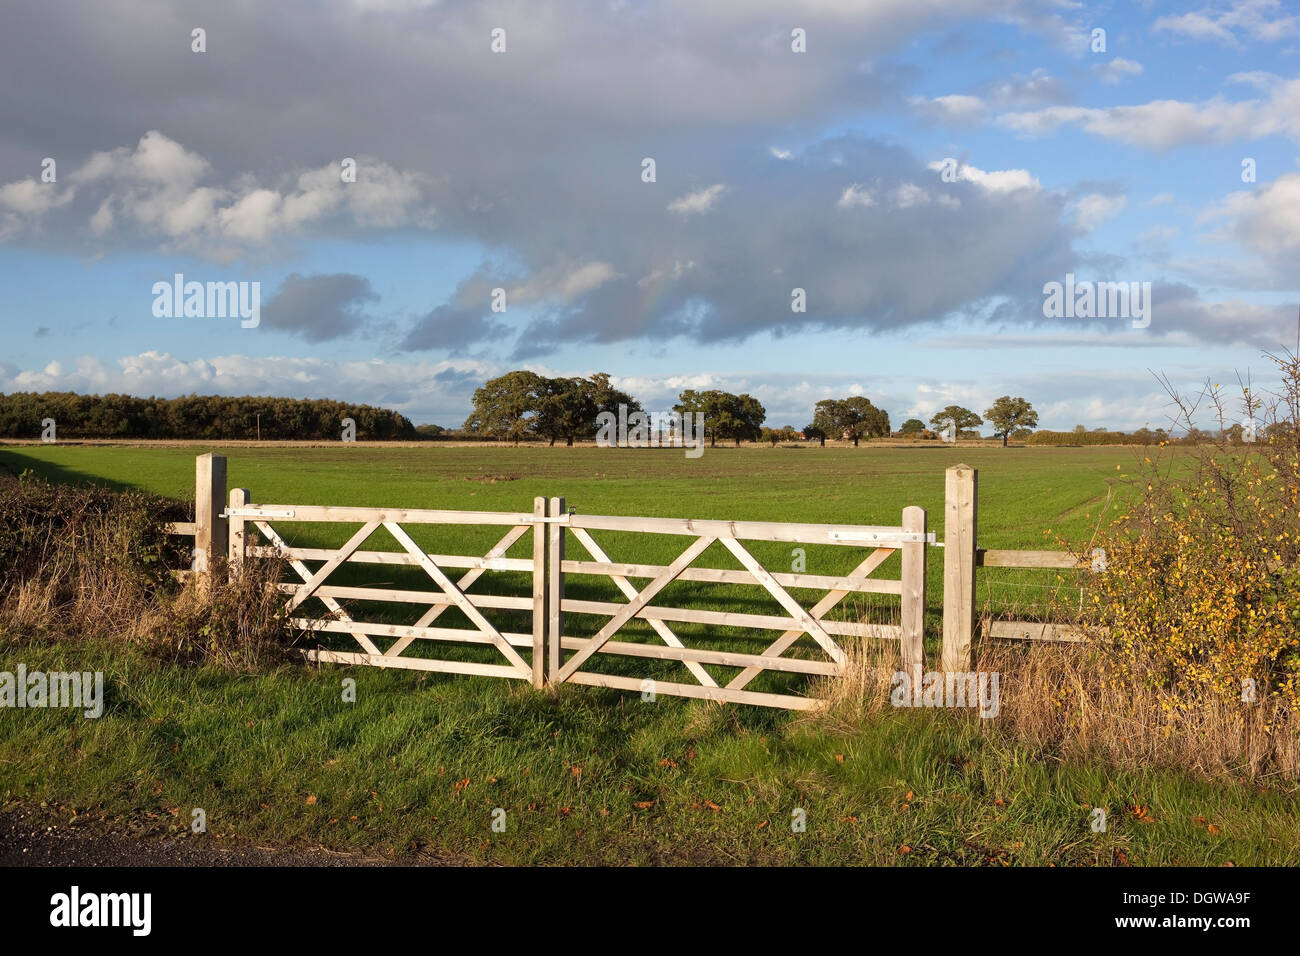 Traditional Style Wooden Farm Gates Enclosing A Young Wheat Field